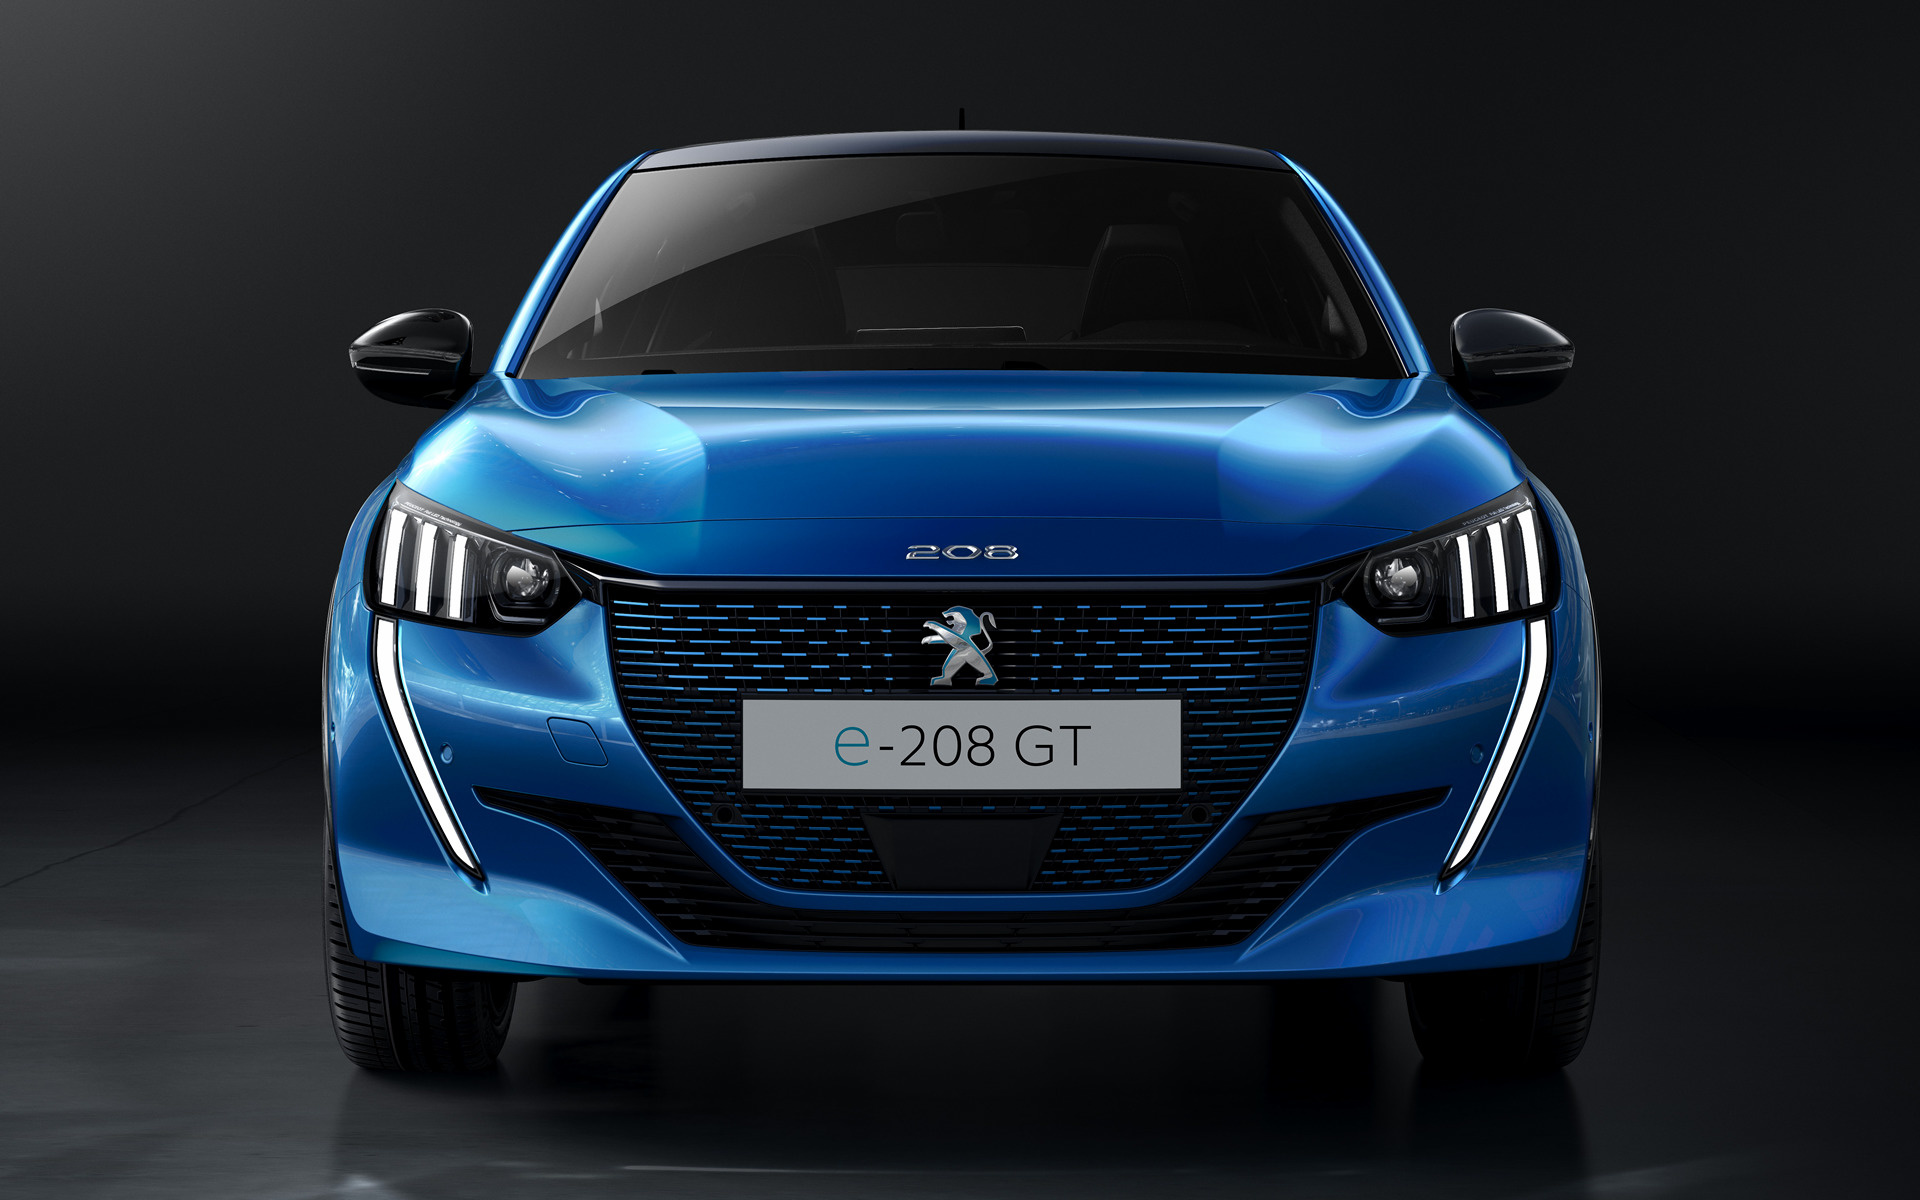 Cars On Line >> 2019 Peugeot e-208 GT - Fonds d'écran et images HD | Car Pixel